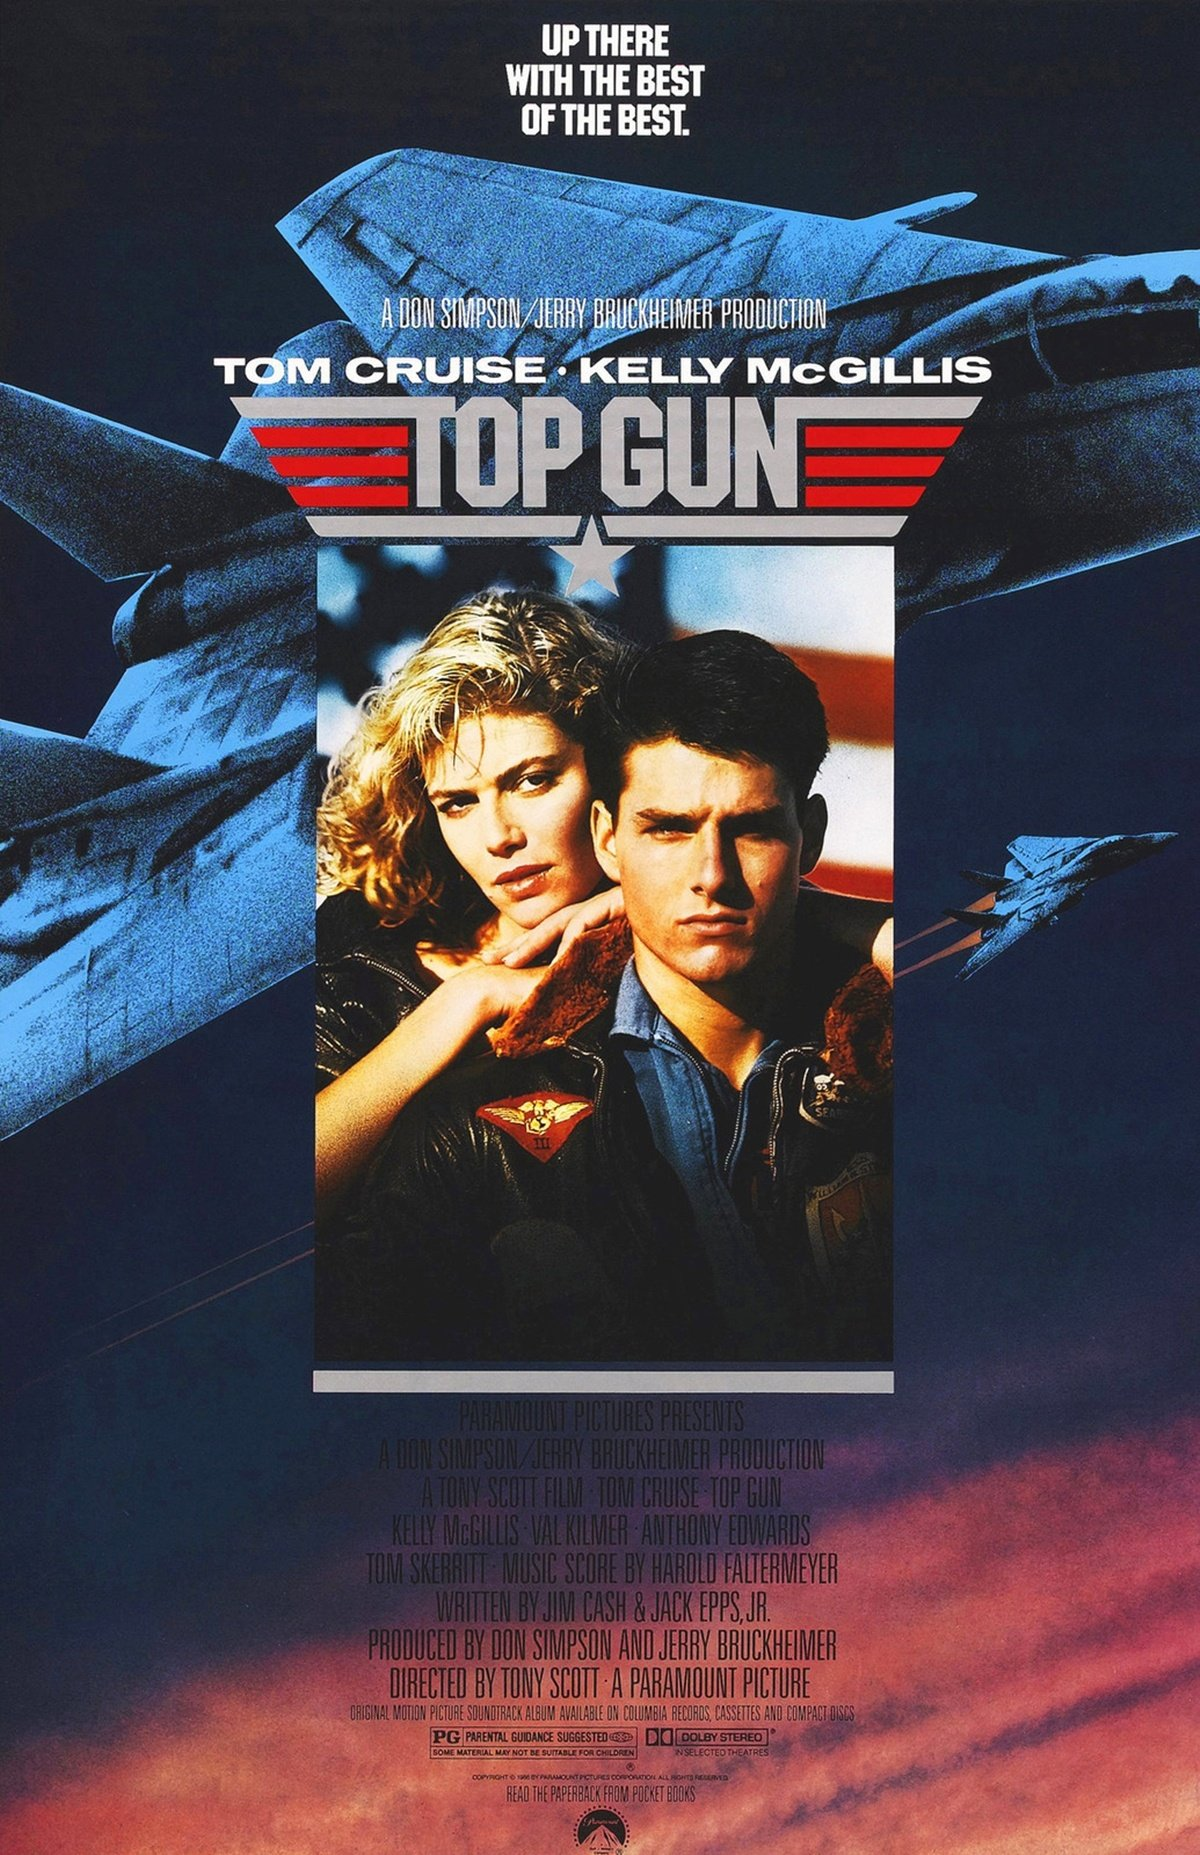 18 1 If You've Watched At Least 15 Of These 20 Movies You're A TRUE 80s Kid!